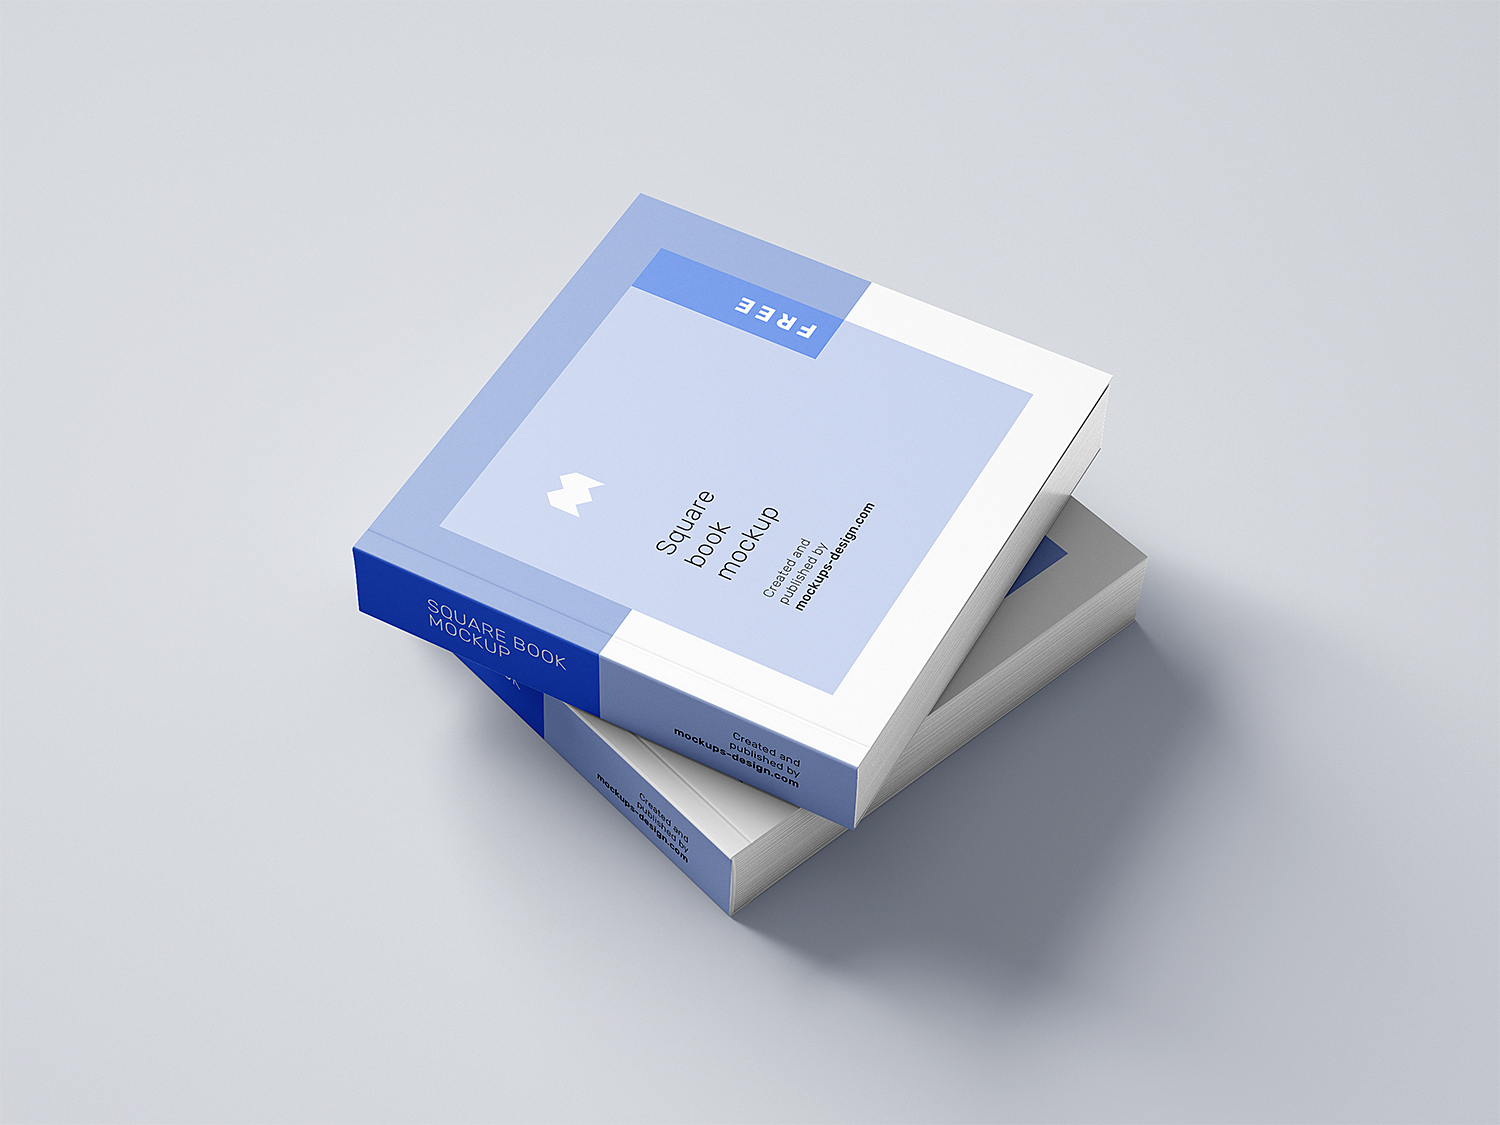 Free Softcover Square Book Mockup